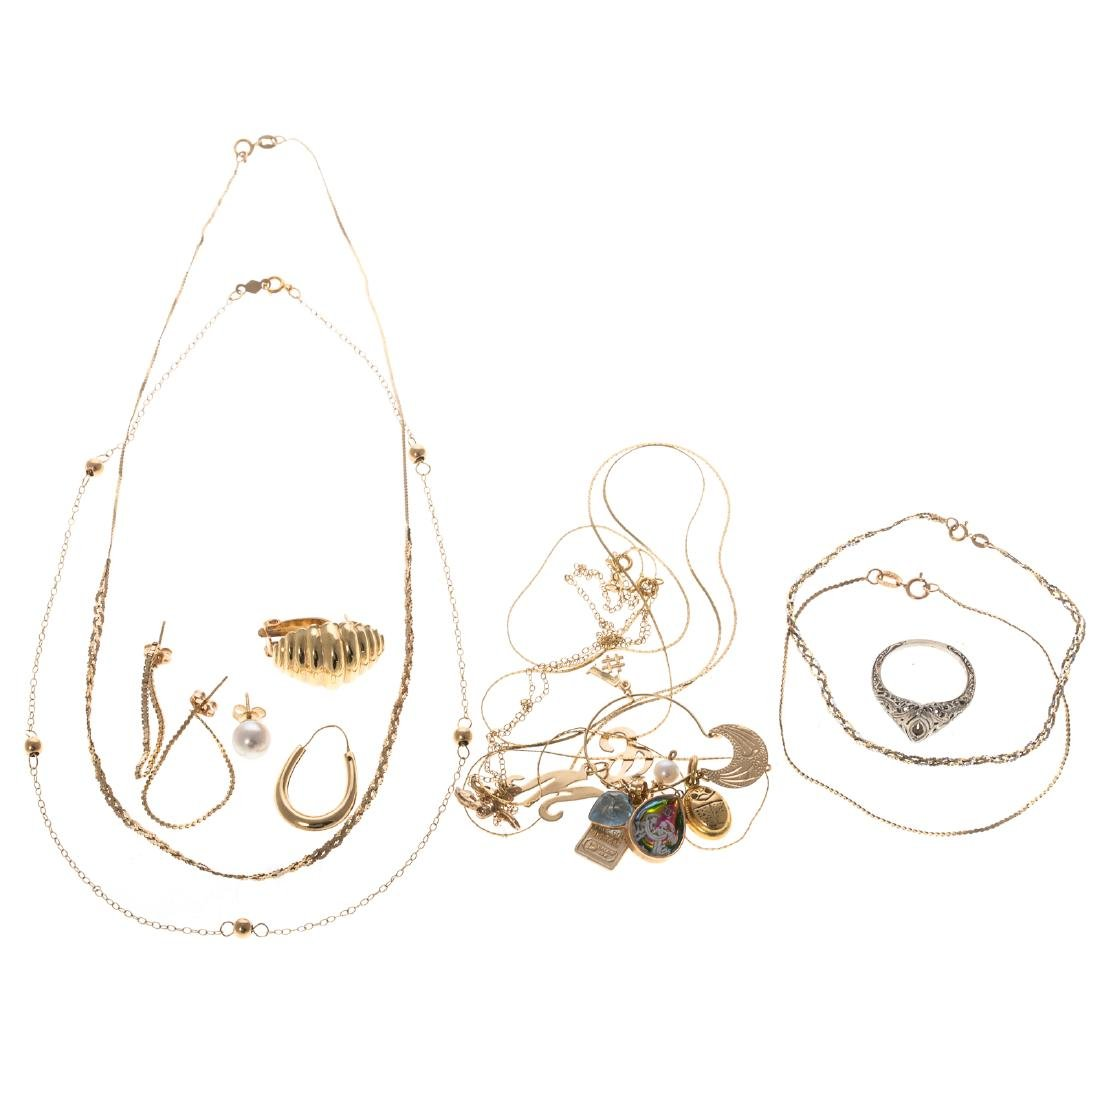 A Collection of Lady's Jewelry in 14K Gold